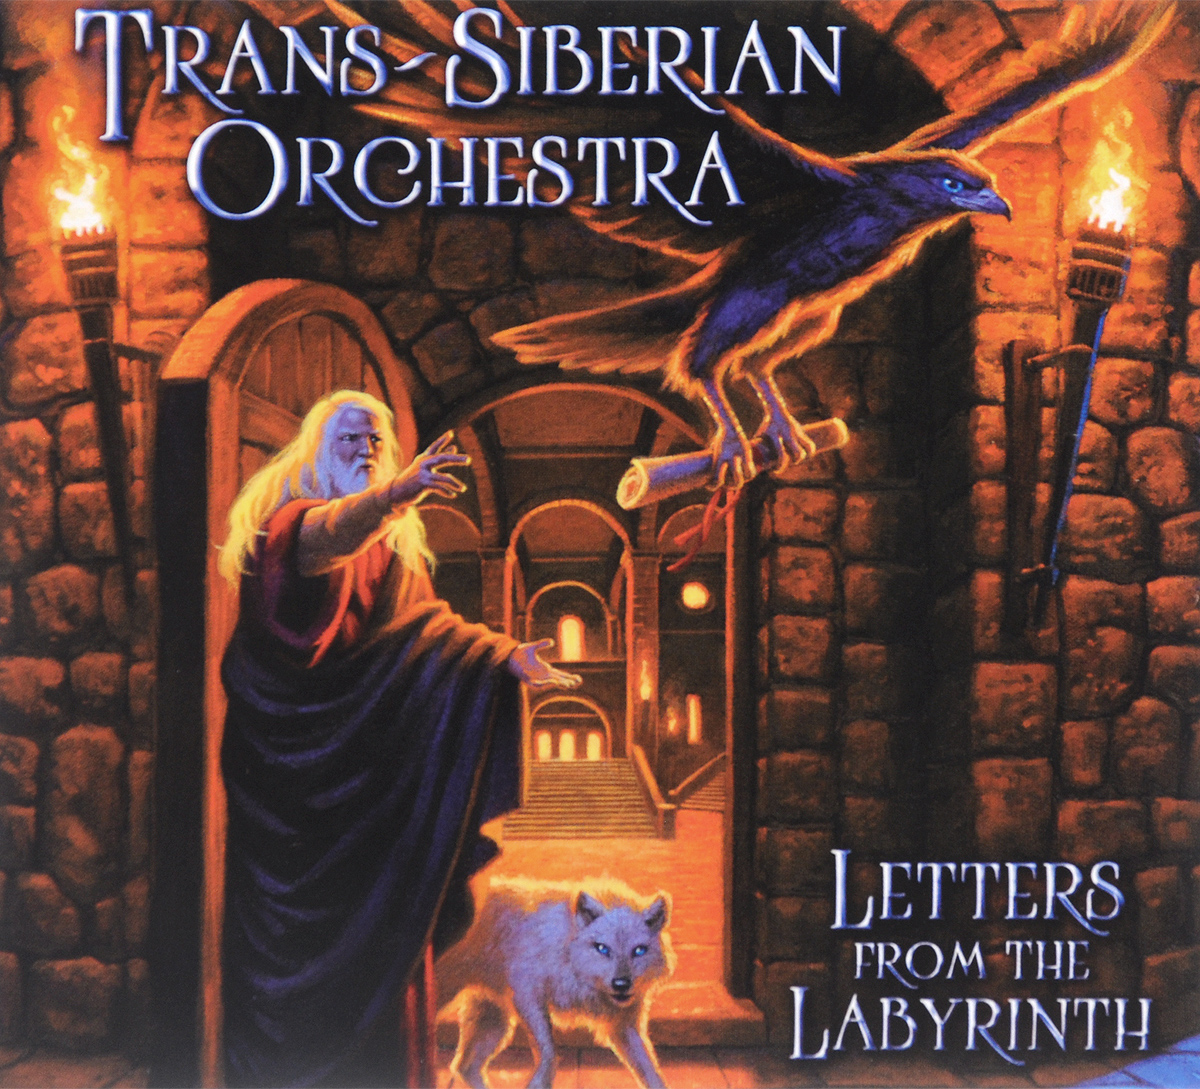 цена на Trans-Siberian Orchestra Trans-Siberian Orchestra. Letters From The Labyrinth